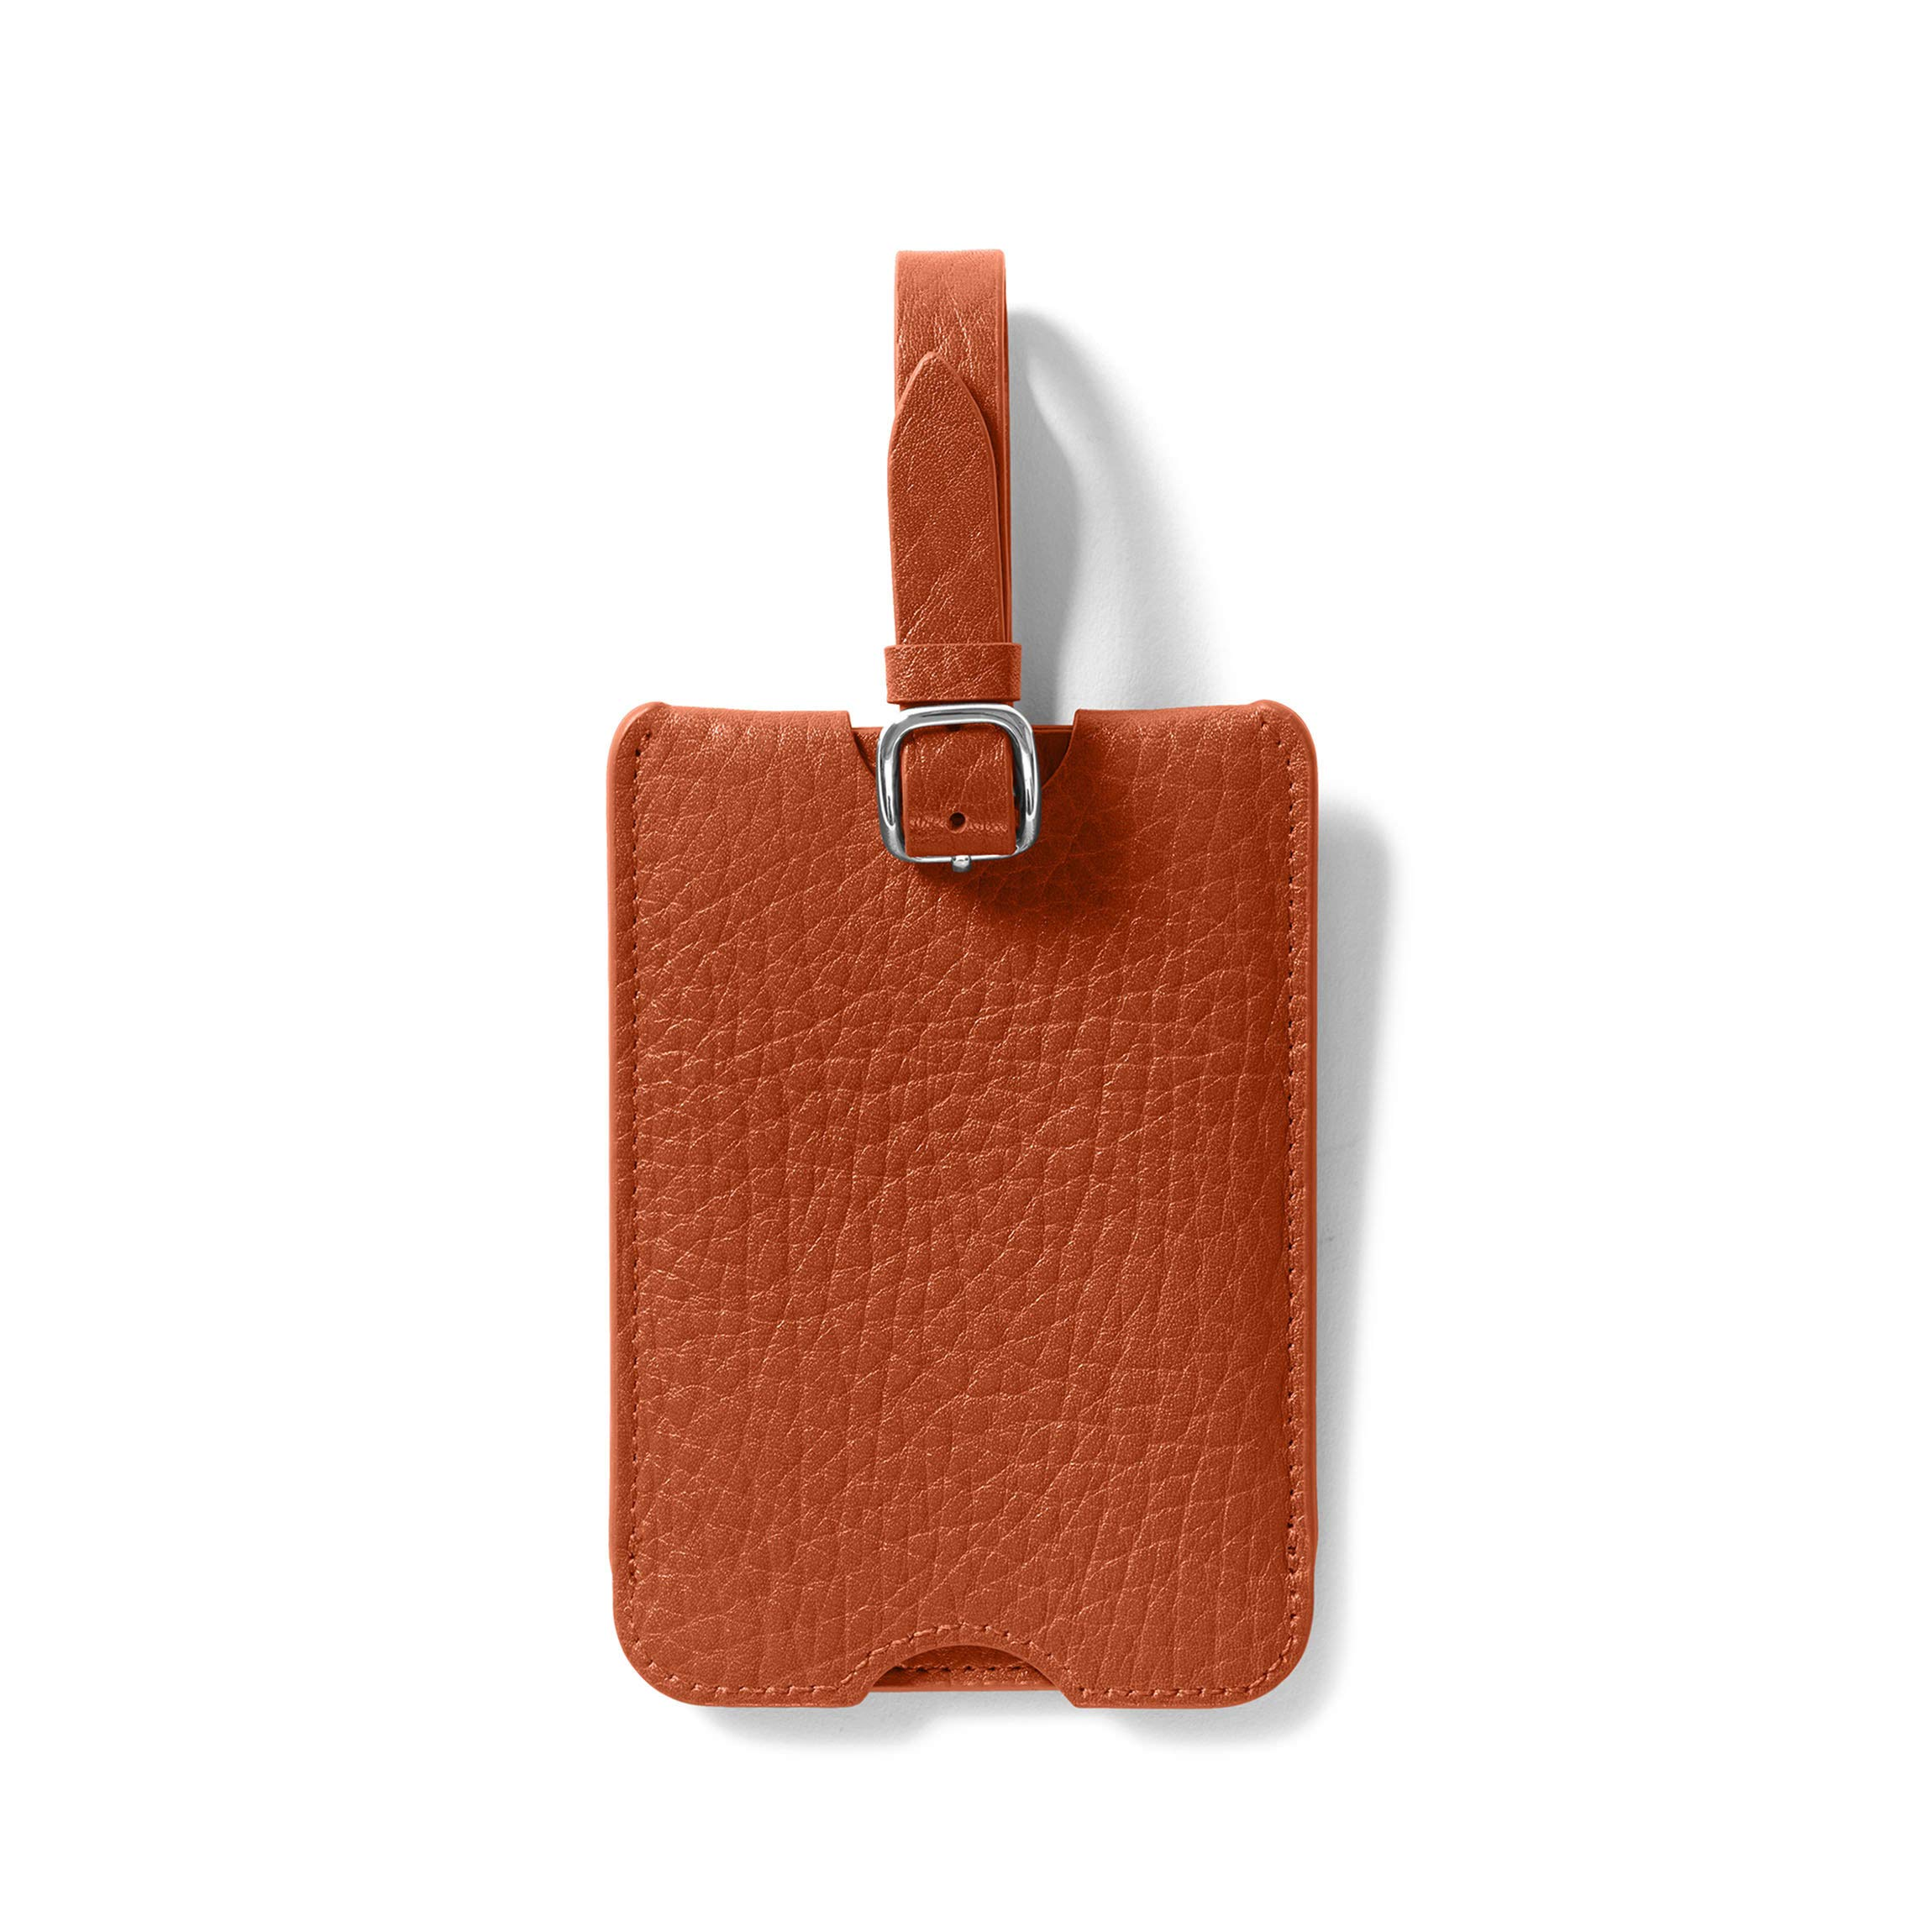 Deluxe Luggage Tag - Italian Leather - Whiskey (brown)